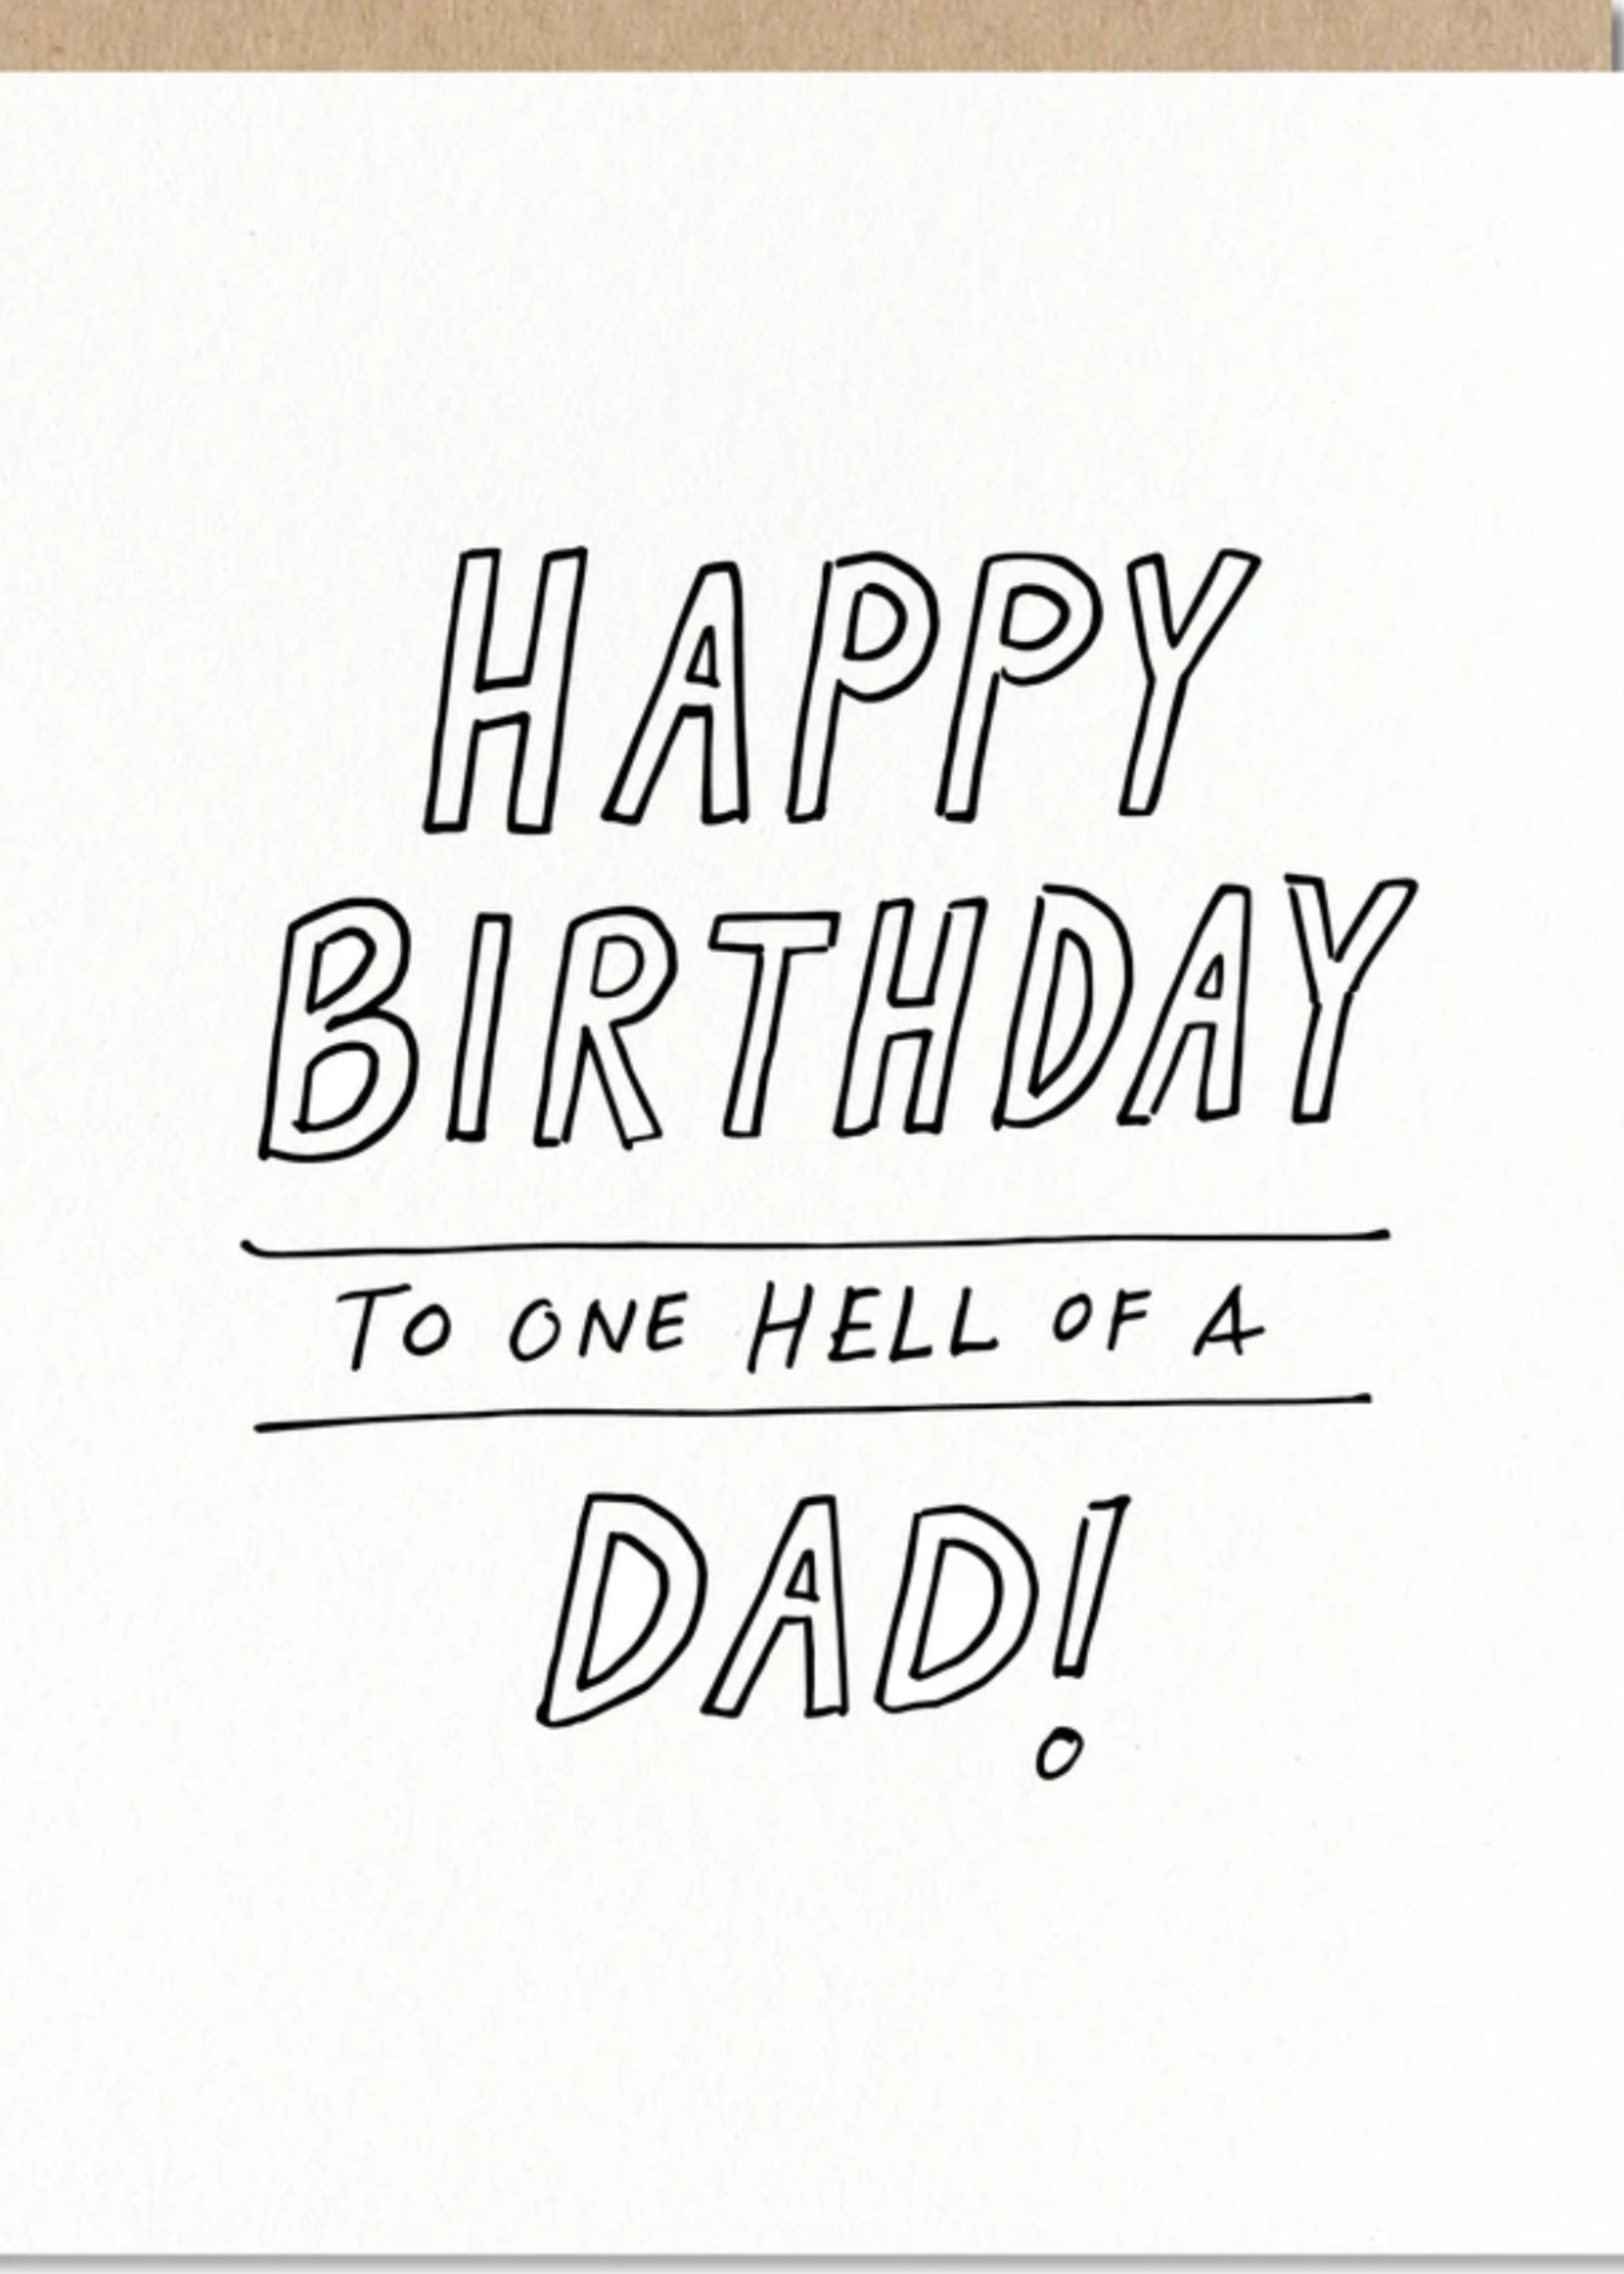 odd daughter hell of a dad card